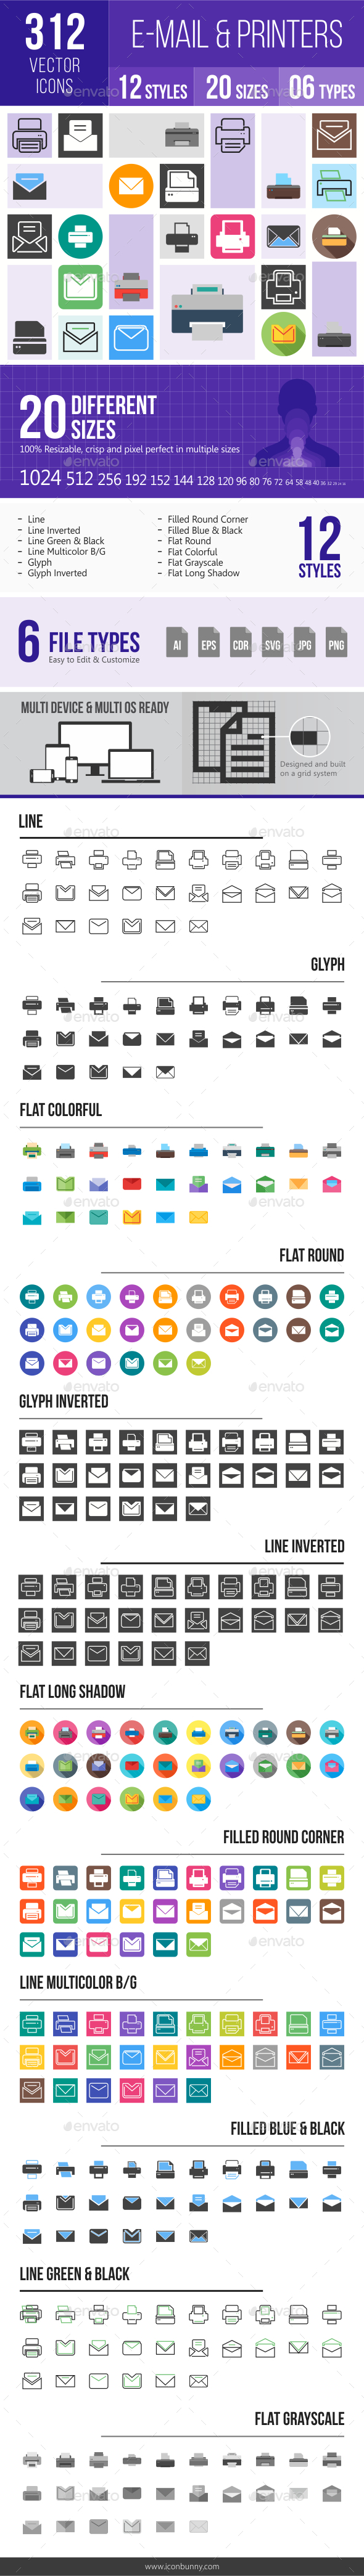 312 Email & Printer - Technology Icons - Icons